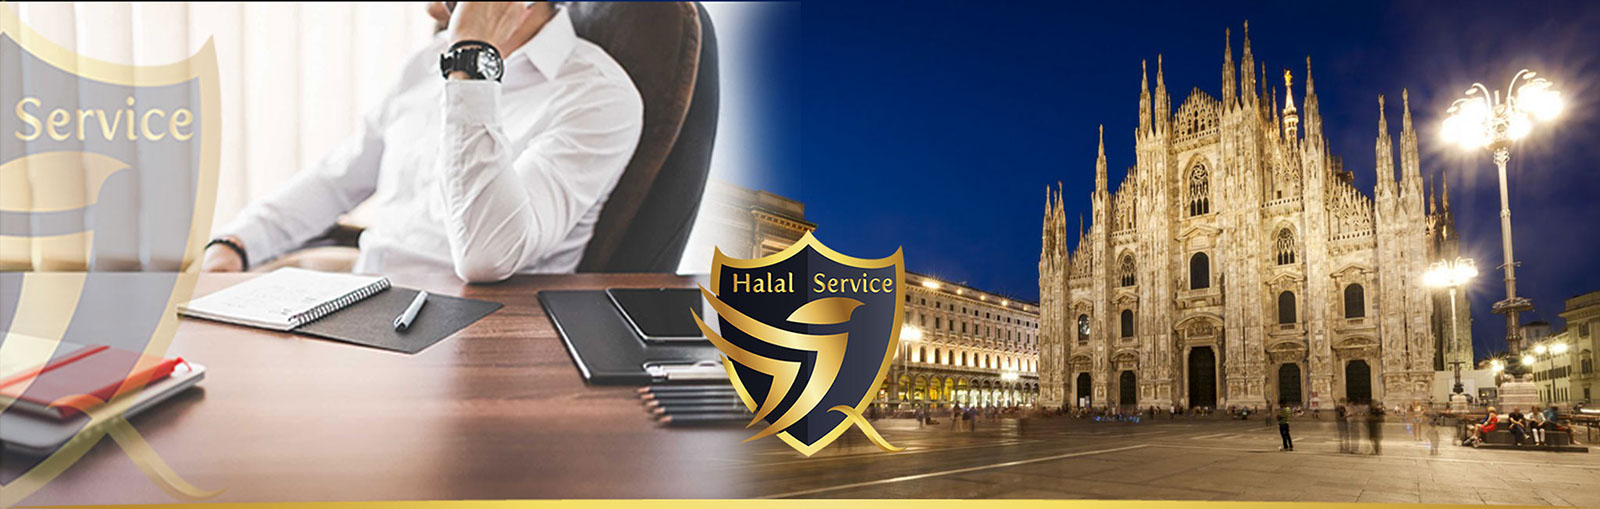 Servizi Halal chiavi in mano HALAL SERVICE - HS. sicurezza, accompagnamento, baby sitting, catering, room fitting